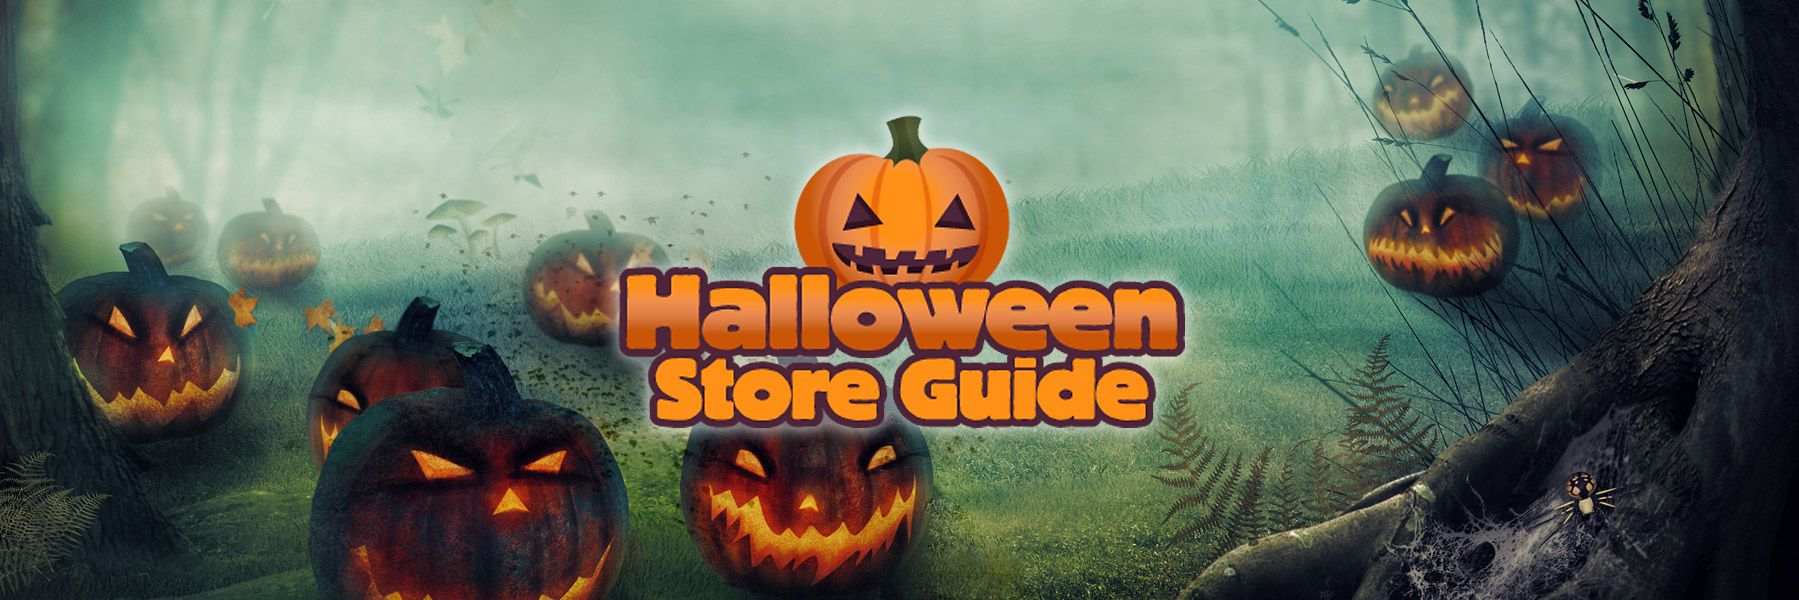 Halloween Costumes Websites For 2019